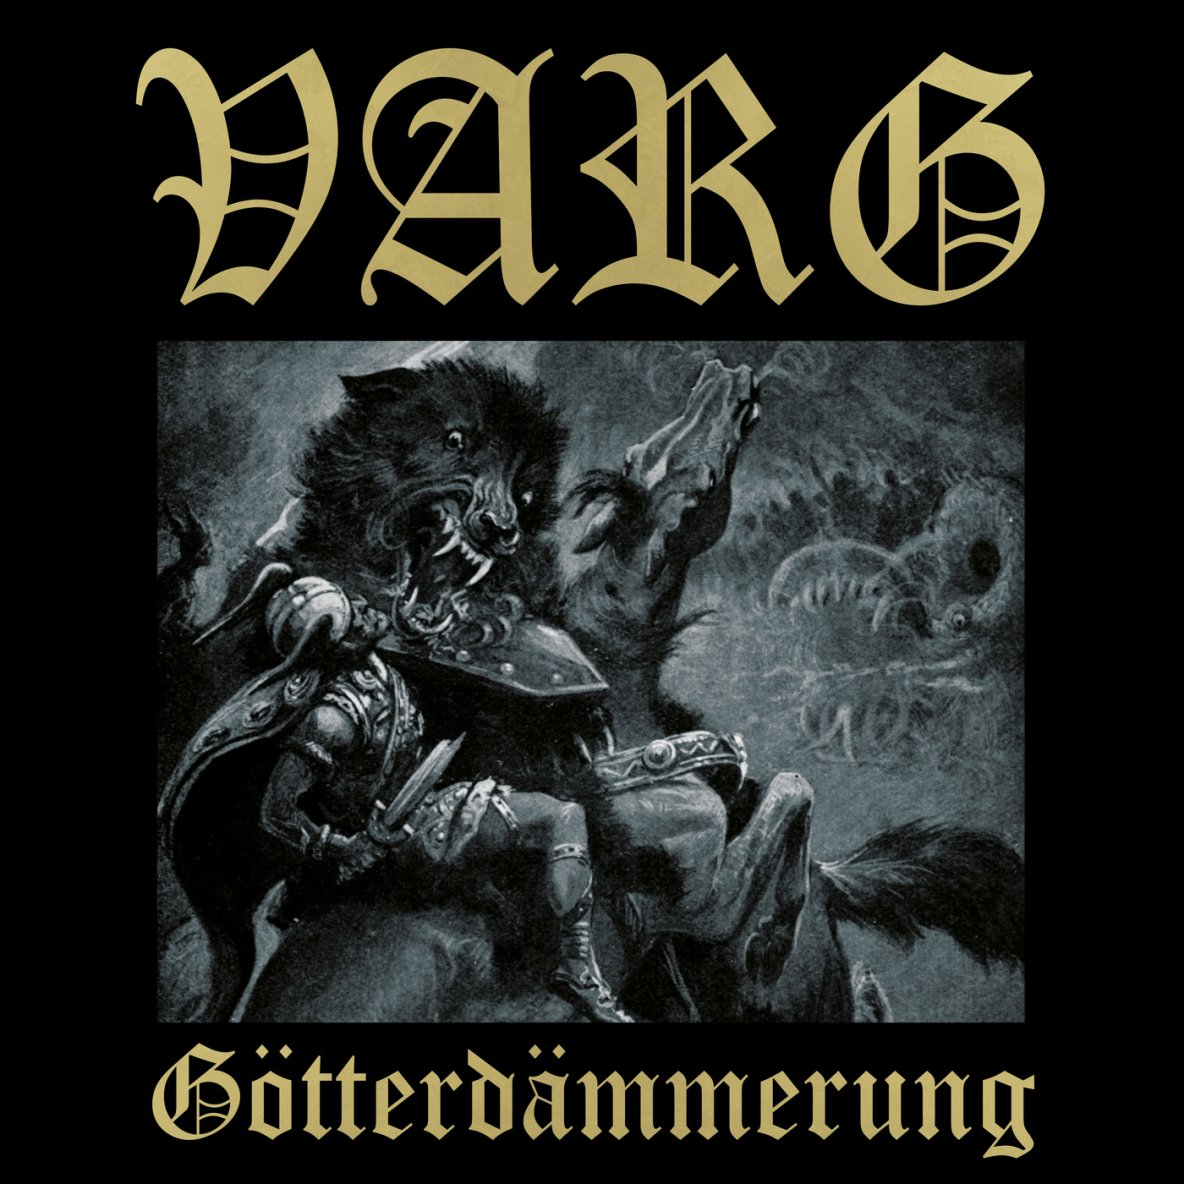 ✠... Varg - Götterdämmerung [Official Video] | Napalm Records …✠